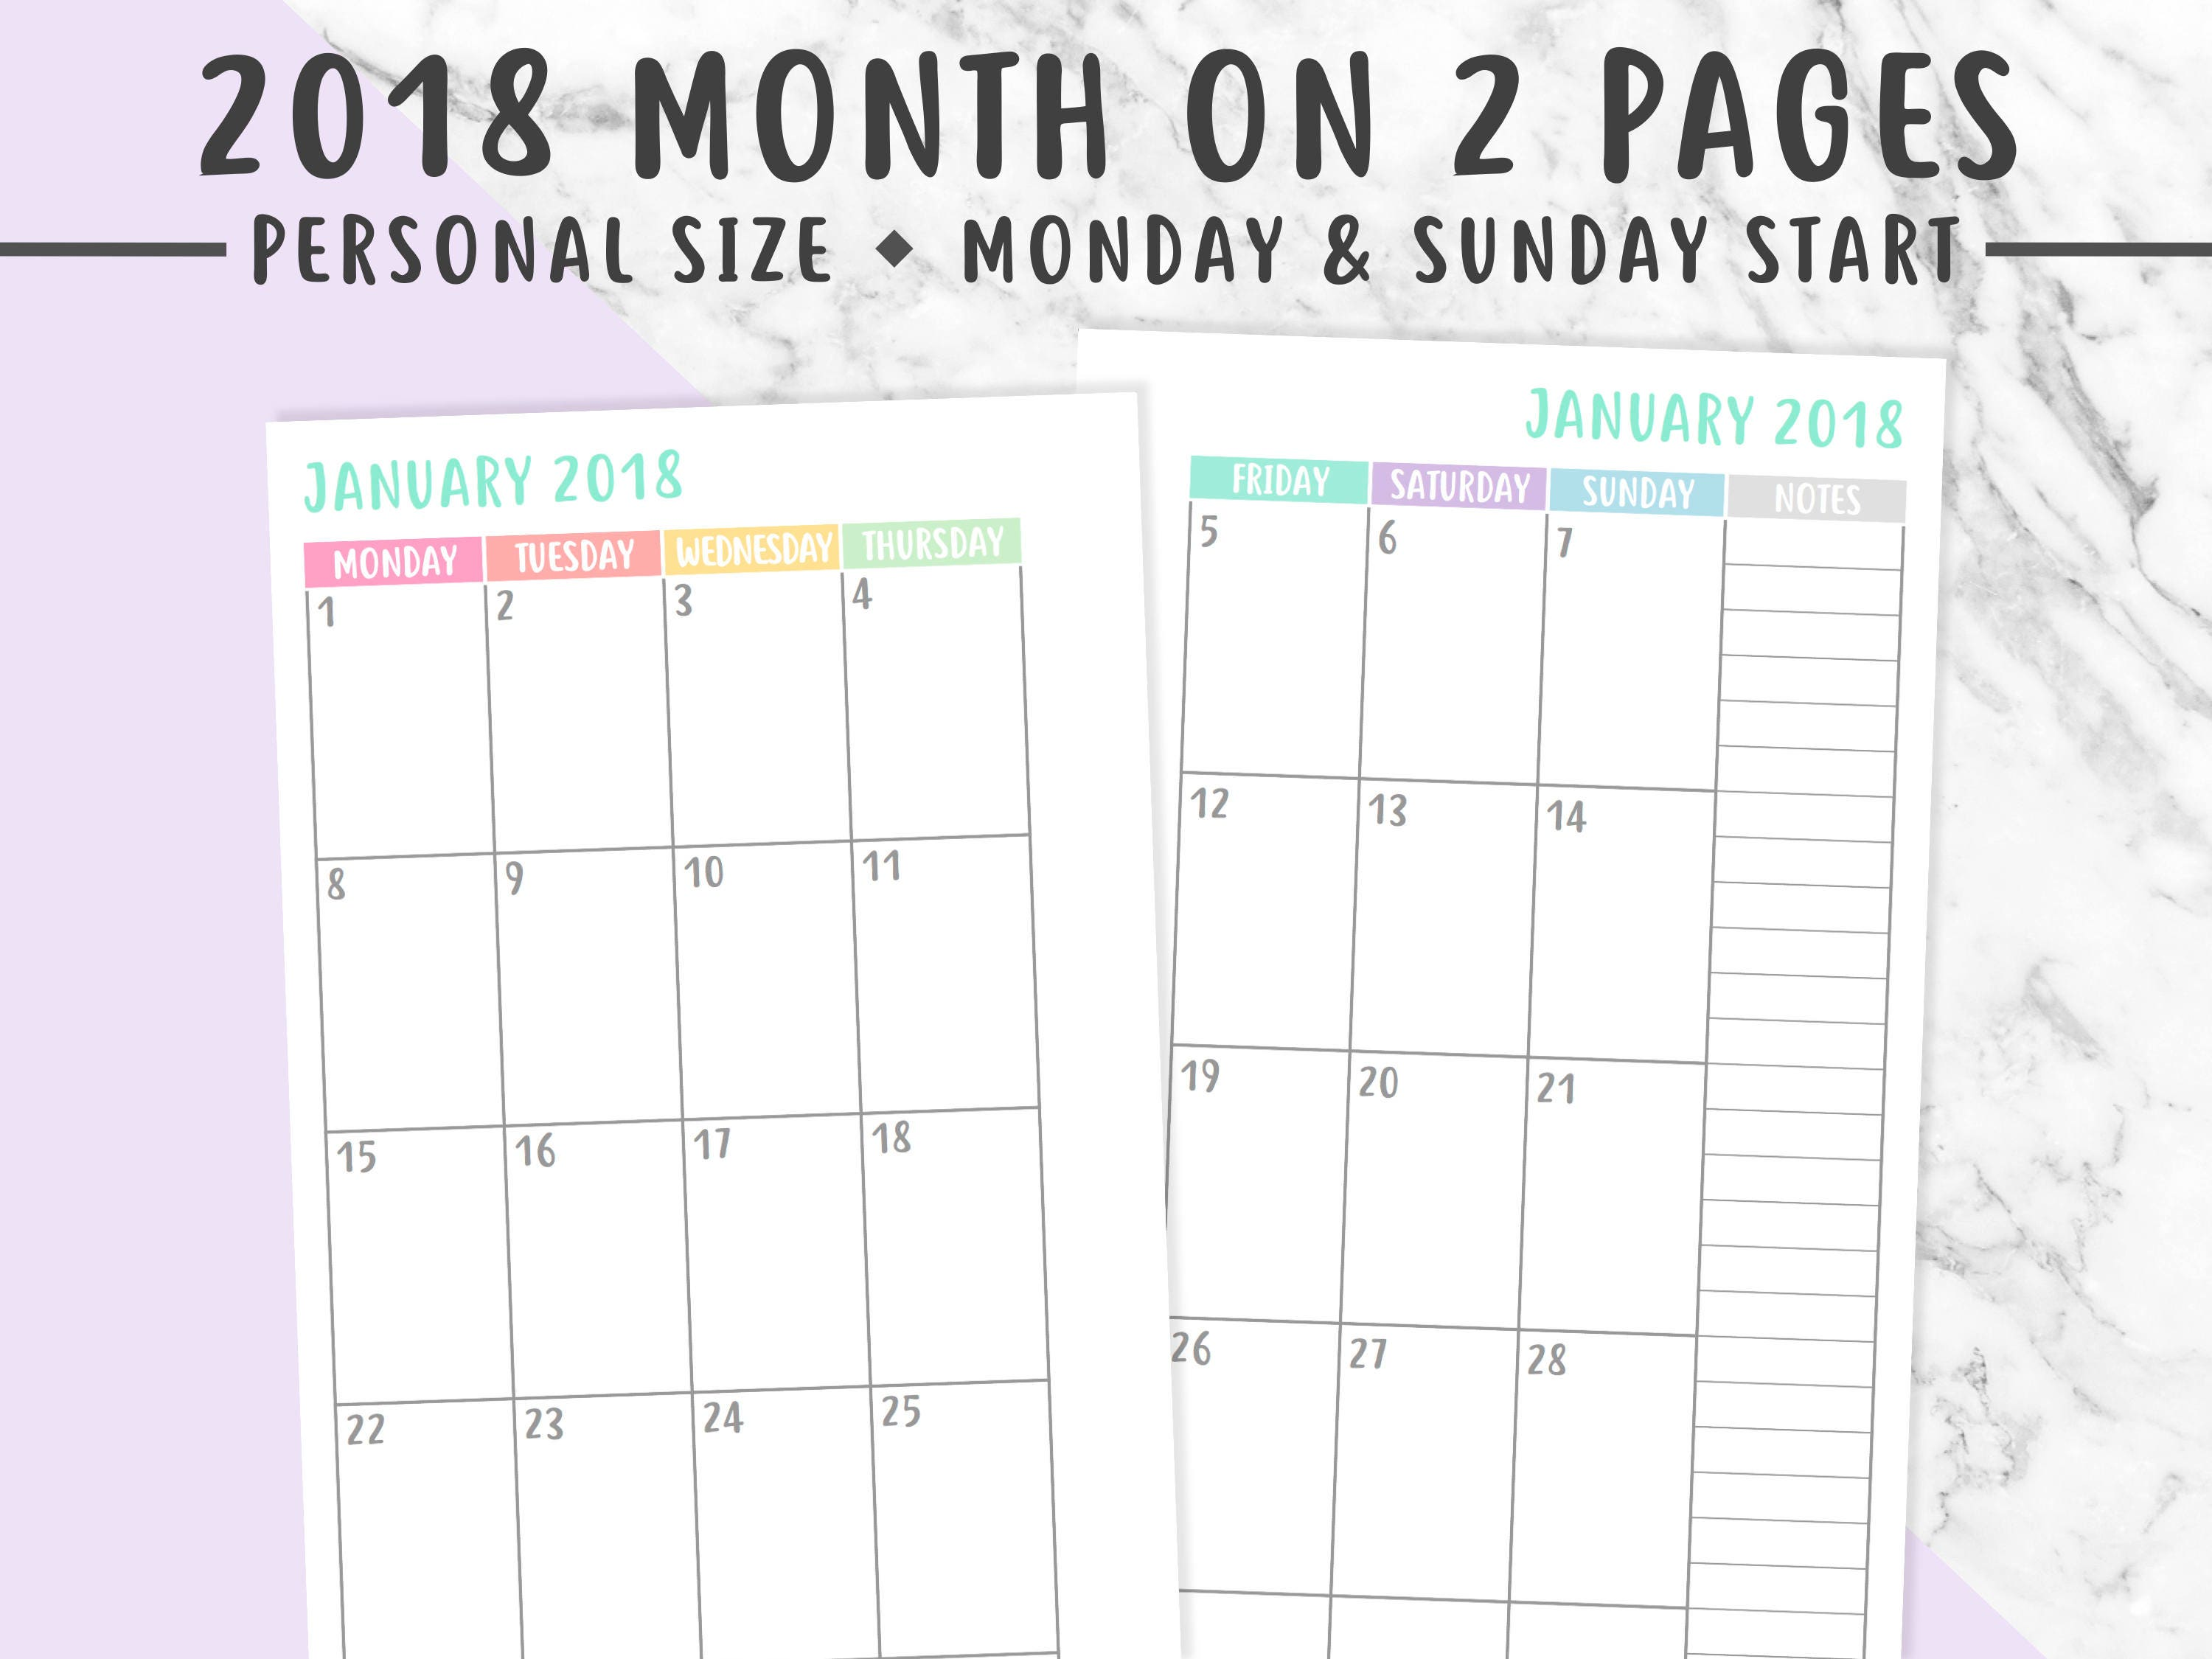 PERSONAL 2018 MONTHLY PLANNER Printable Month On 2 Pages